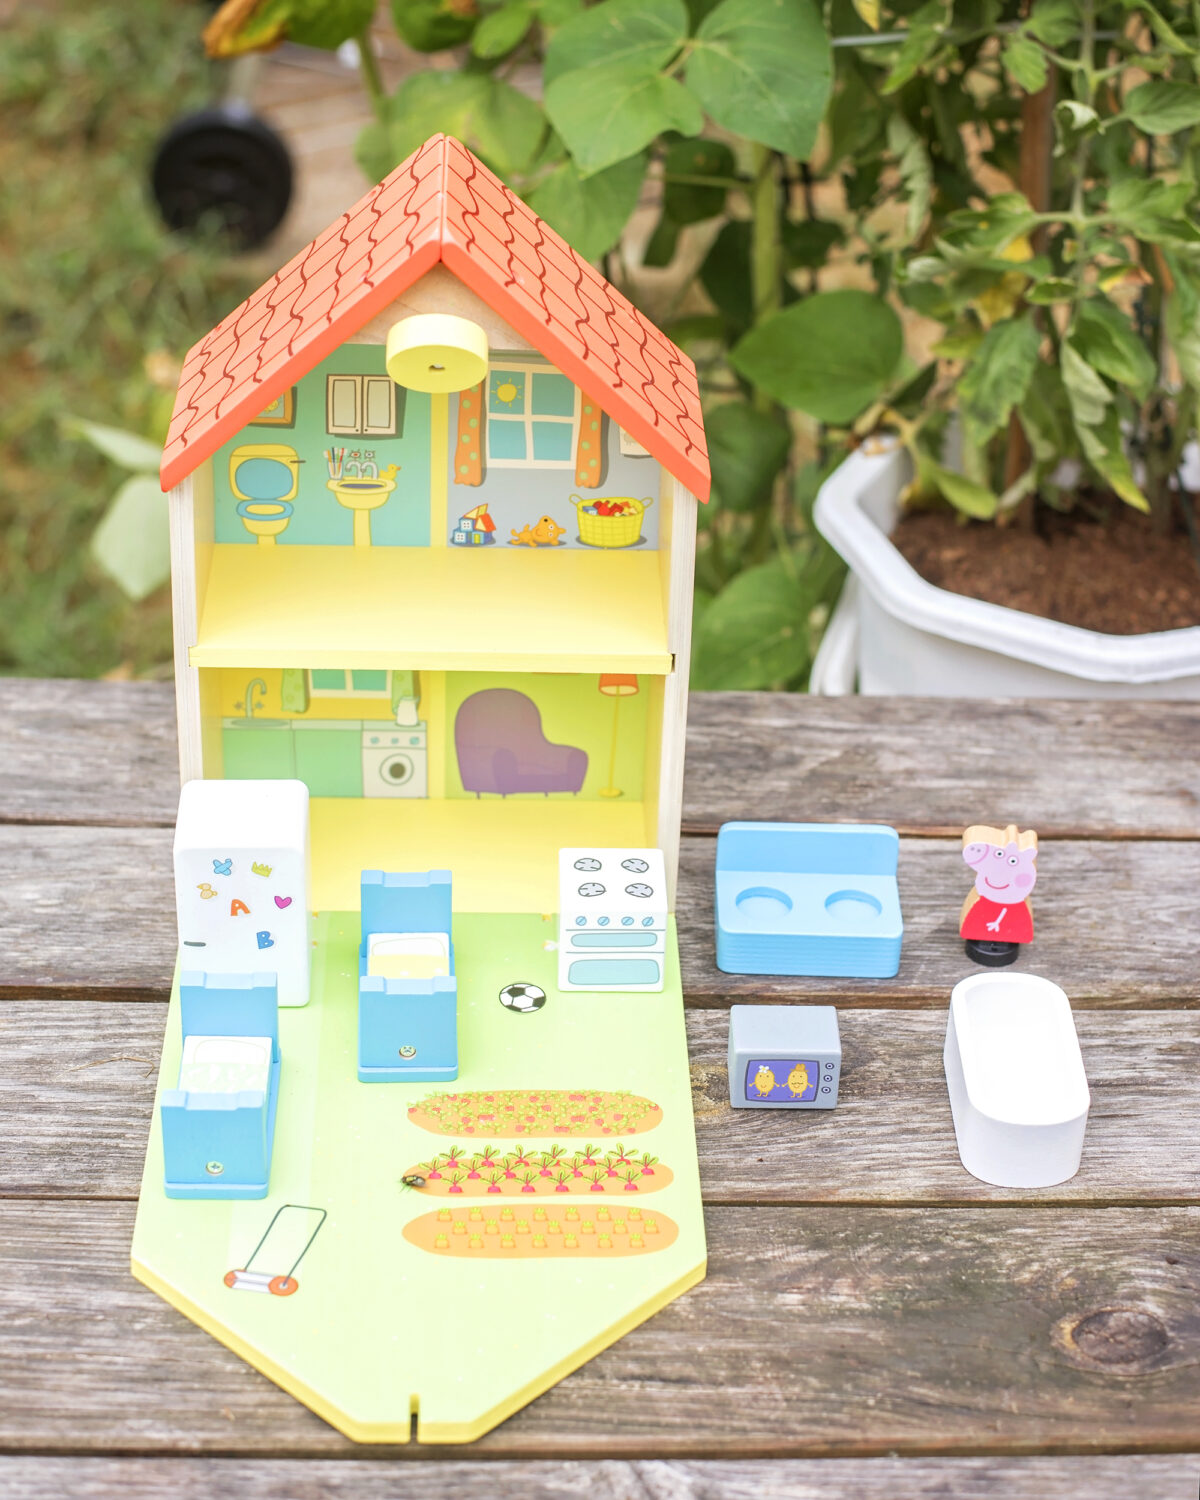 Peppa pig wooden house contents